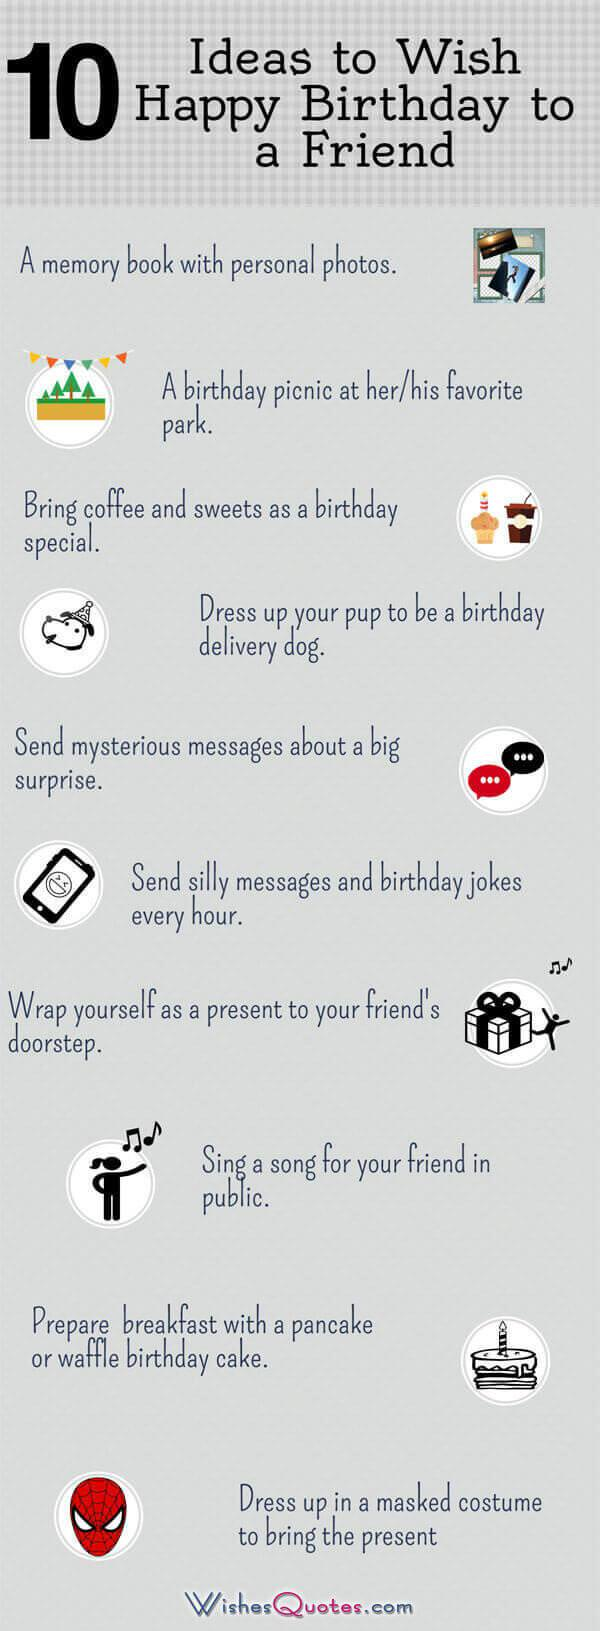 10 Smart Ideas To Wish Happy Birthday A Friend